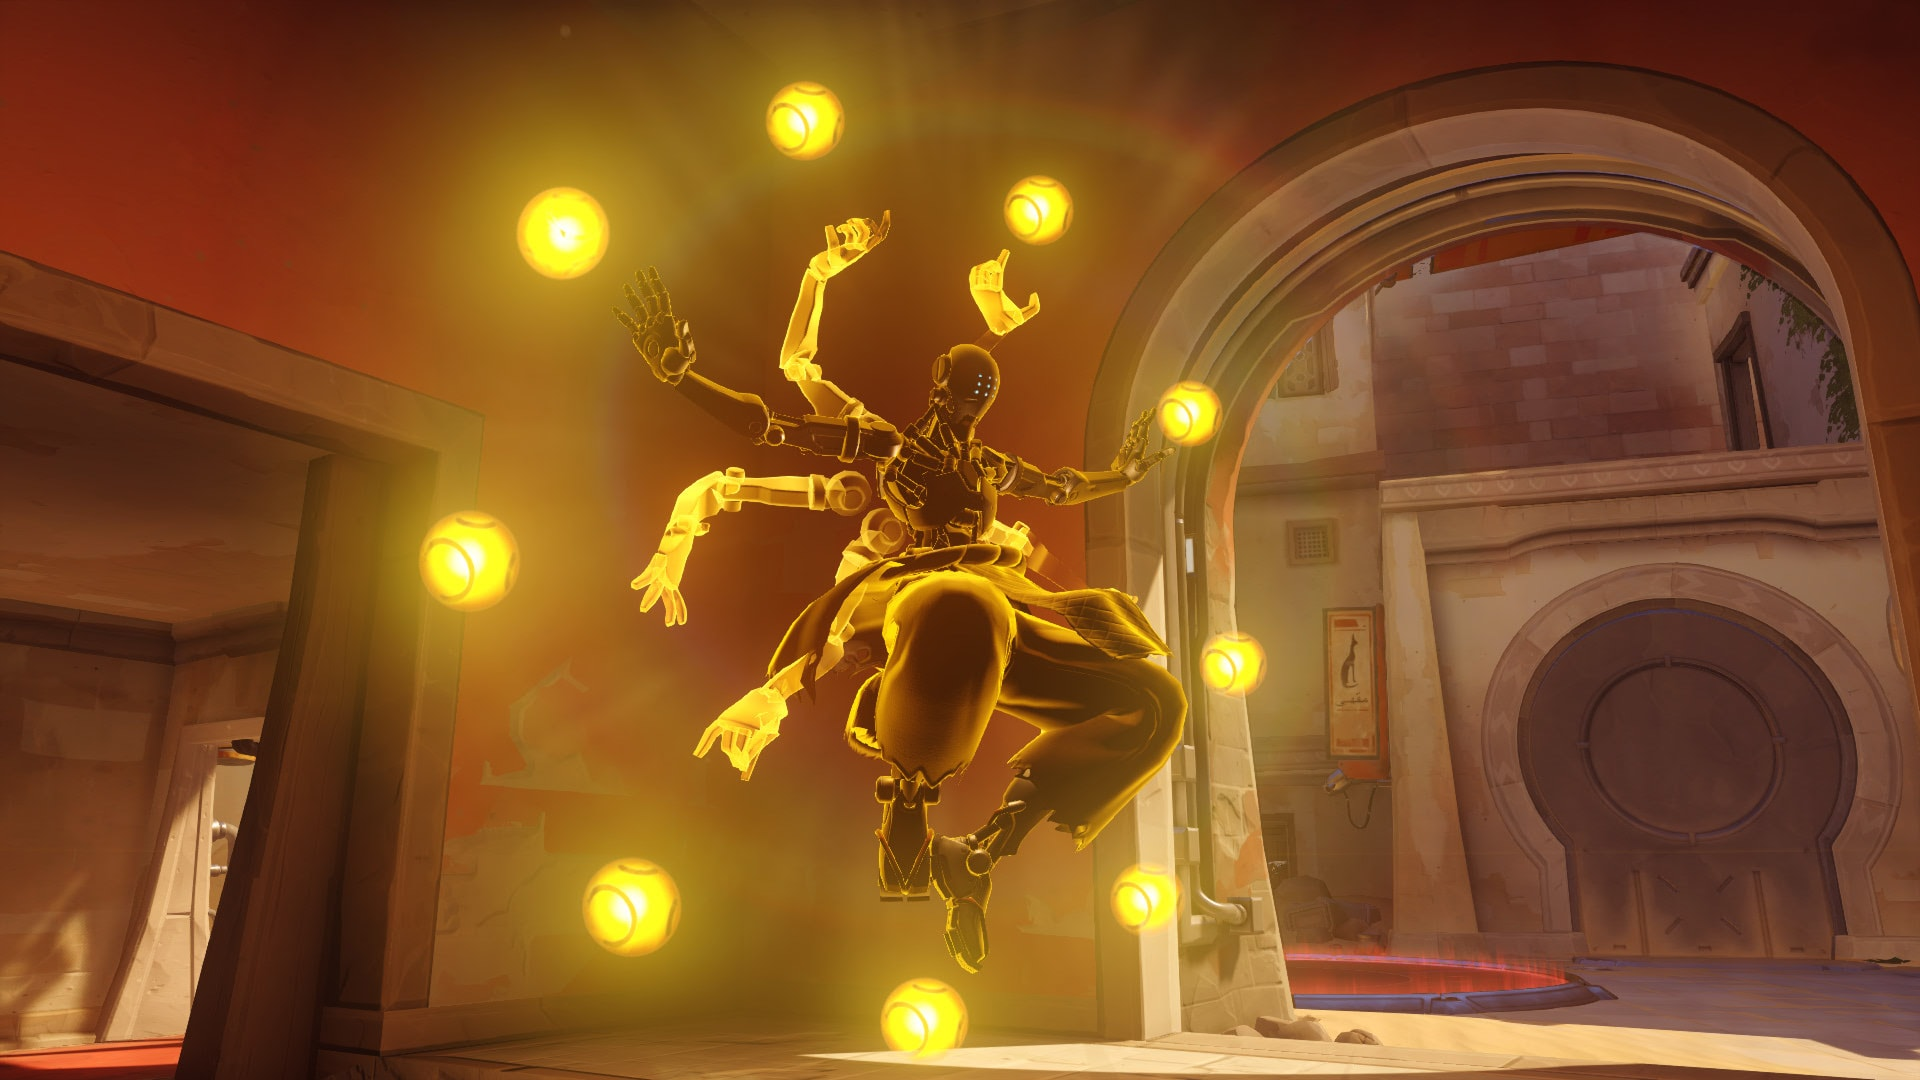 Overwatch : Zenyatta Widescreen for desktop